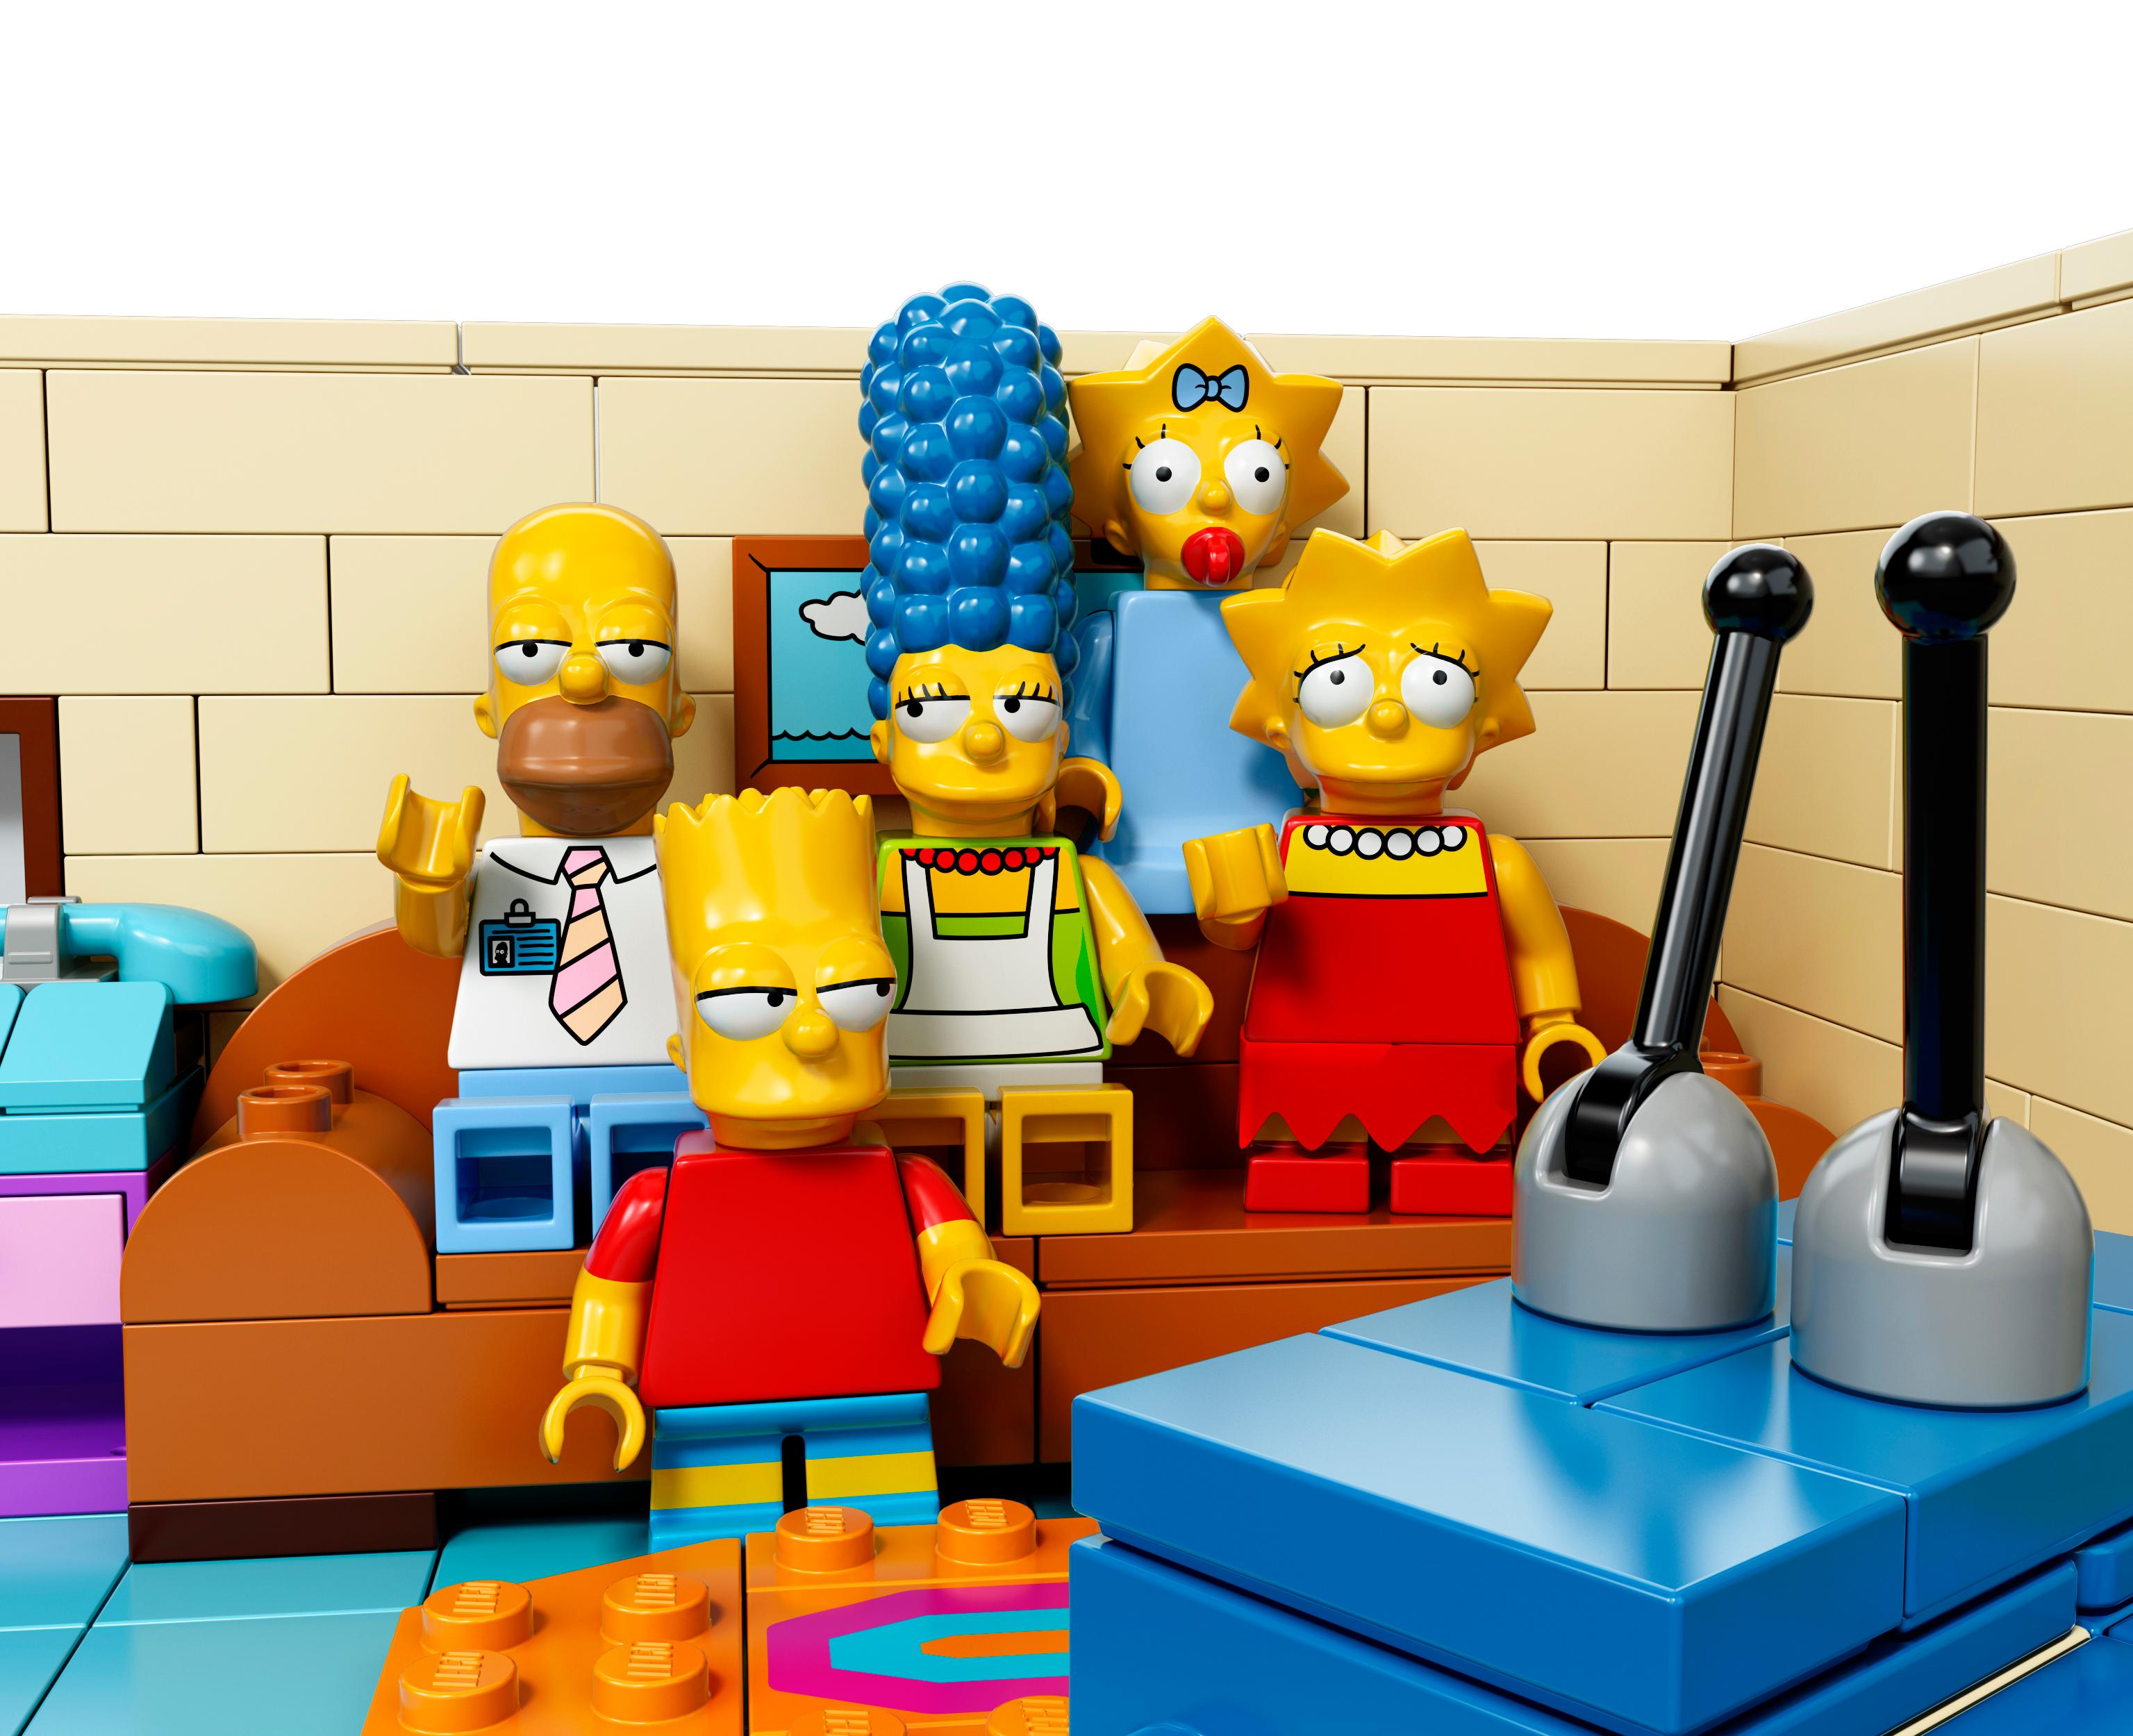 Amazon.com: LEGO Simpsons 71006 The Simpsons House: Toys & Games